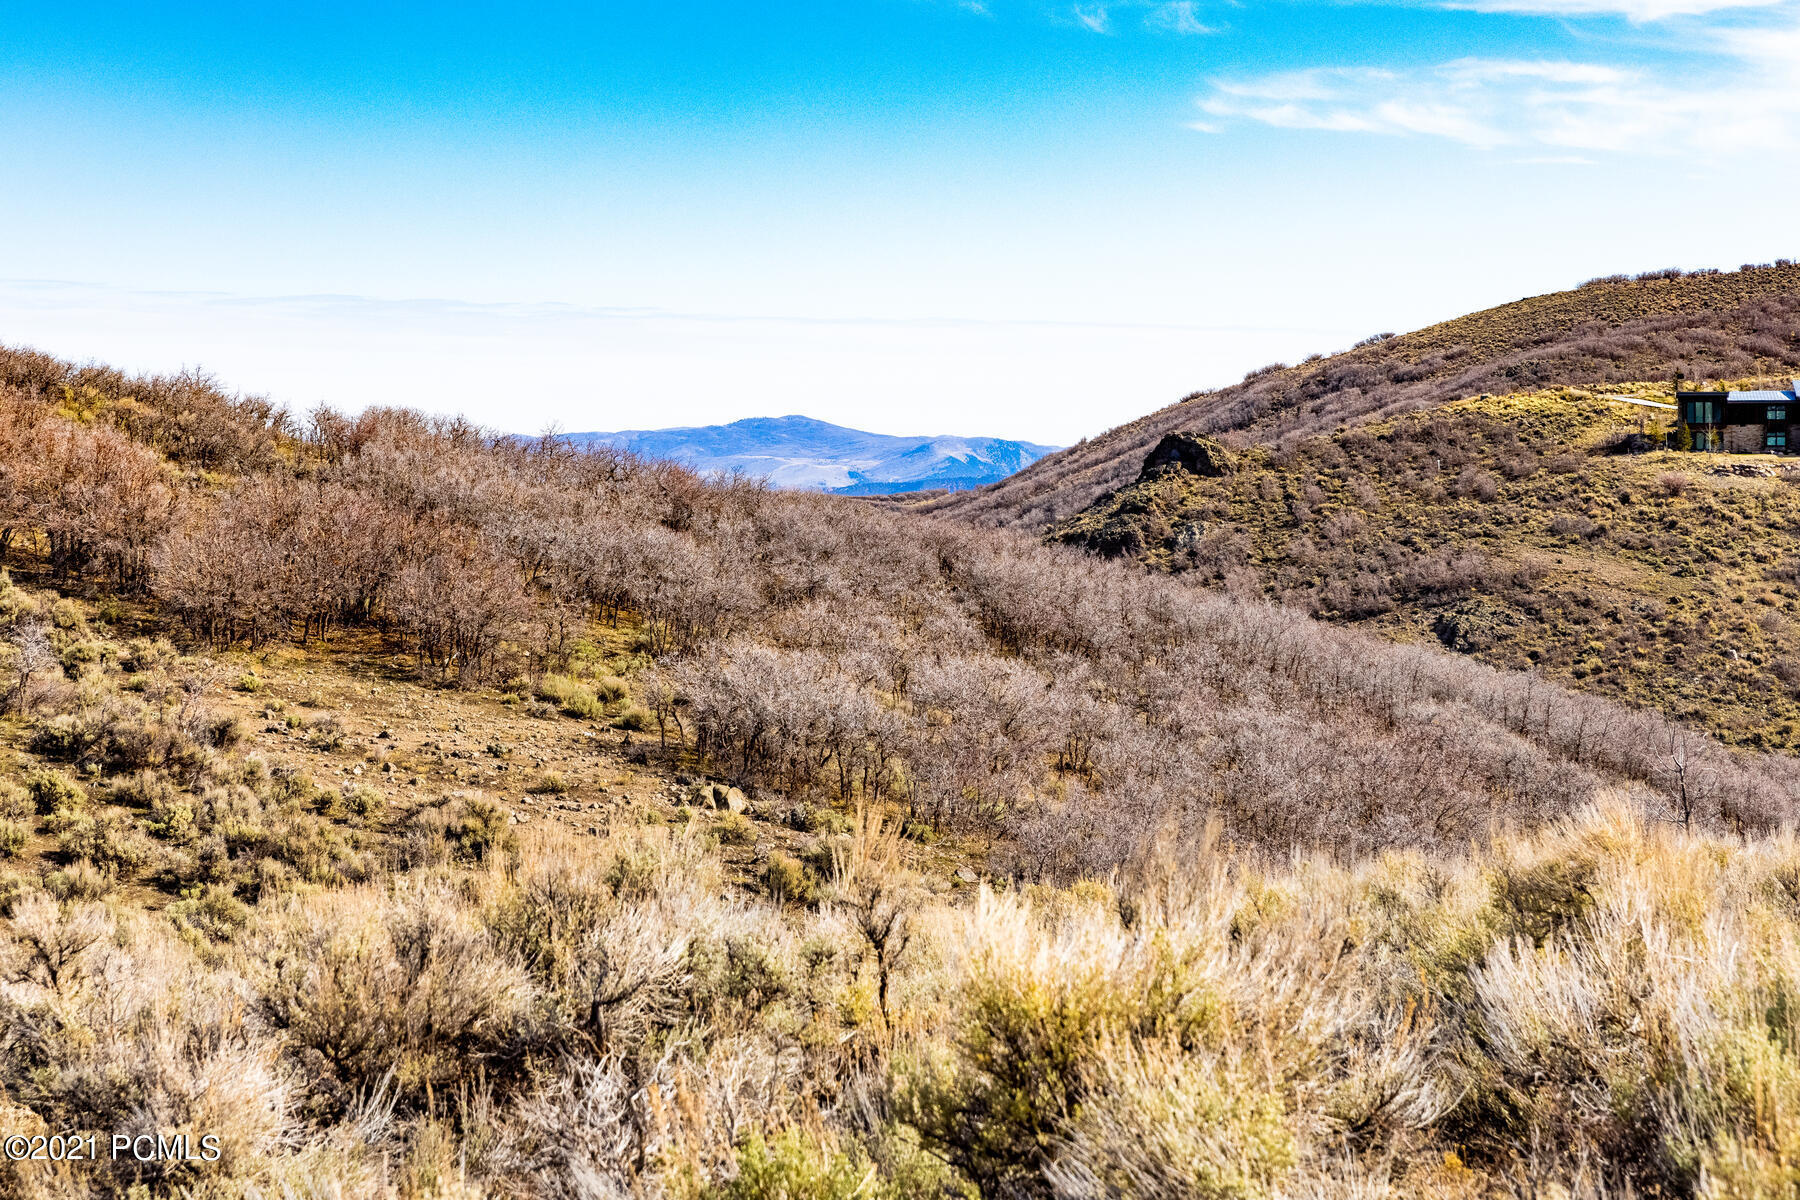 This beautiful homesite located in the Buffalo Jump neighborhood is the perfect spot for wonderful memories yet to be made. With quick access to Promontory's main gate off I-80 with our own exit, you can be in Park City in minutes, and to the Salt Lake City Airport in 30 minutes. Promontory's 40-plus miles of private multi-use nature trails will allow you to connect with the great outdoors or get you to the many amazing Promontory amenities and Pete Dye Golf course. Promontory is Park City's premier golf and recreational community, with members enjoying a private Alpine Ski Lodge and transportation to Deer Valley and neighboring ski resorts.